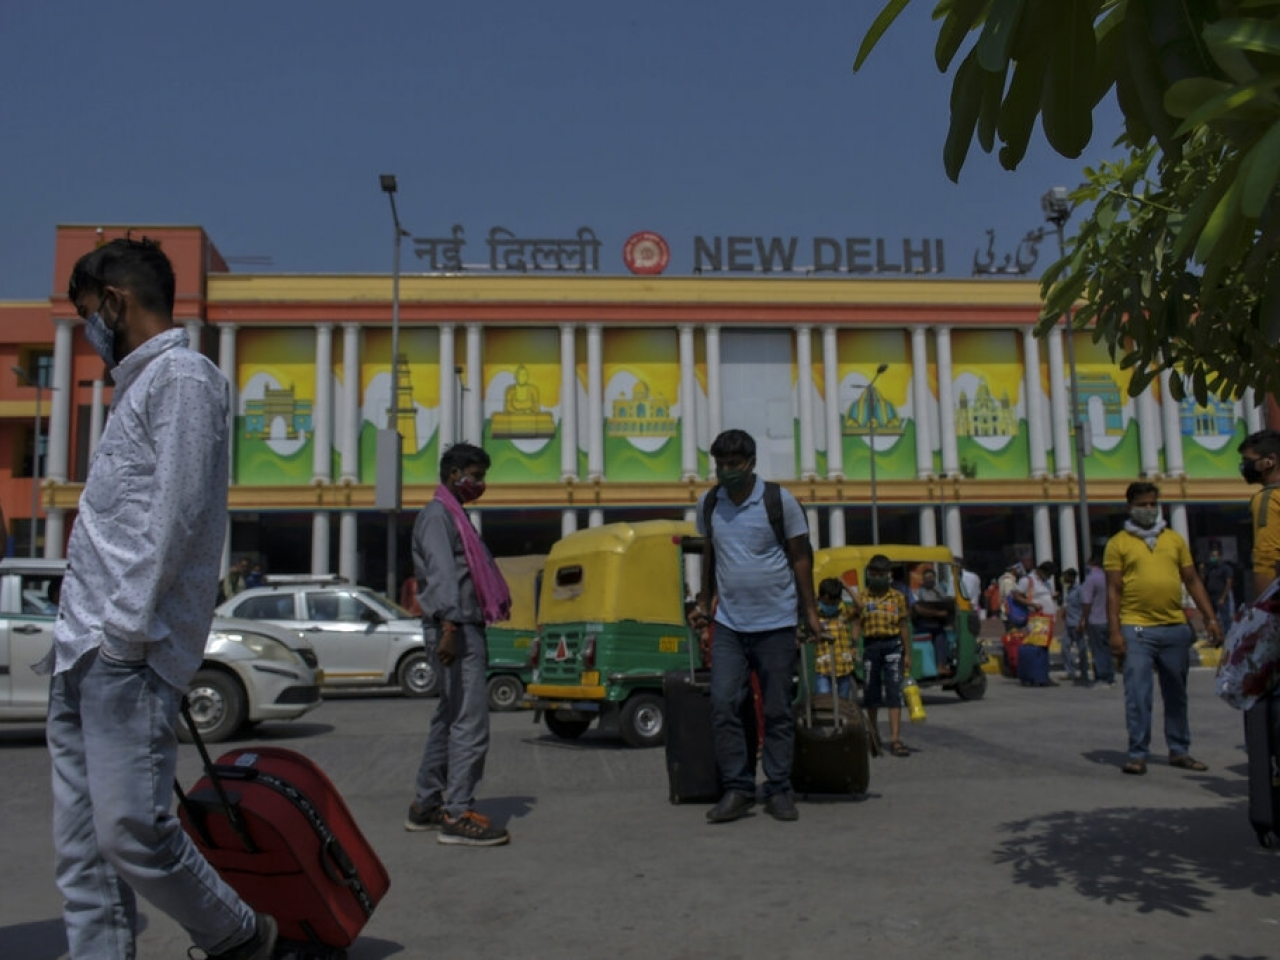 India's capital allowed businesses and shops to reopen with limited hours and the Delhi Metro also resumed operations at 50 percent capacity. Photo: AP